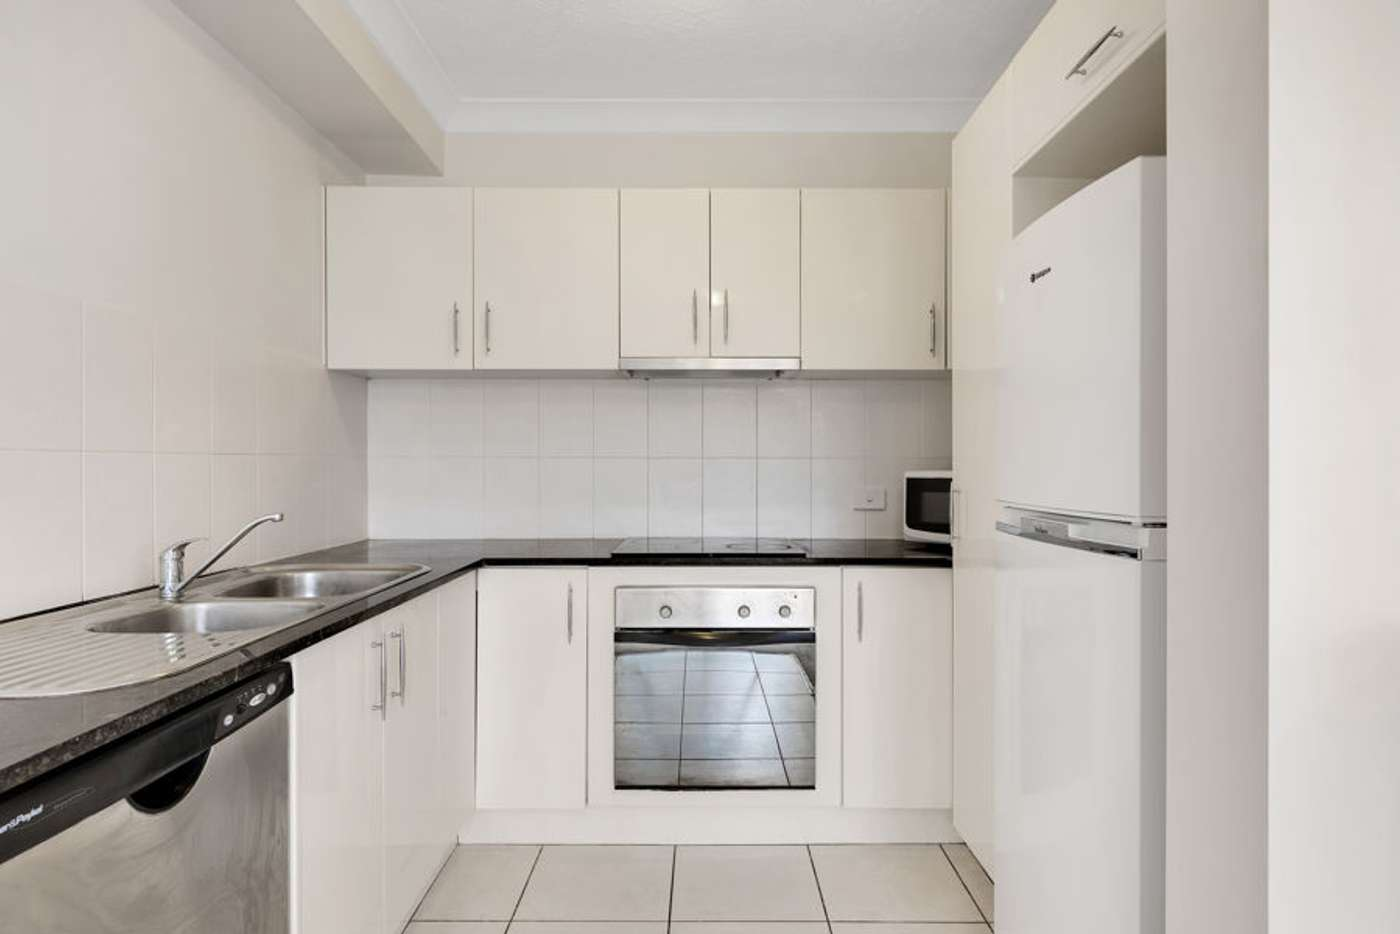 Fifth view of Homely apartment listing, 3/10 Lissner street, Toowong QLD 4066